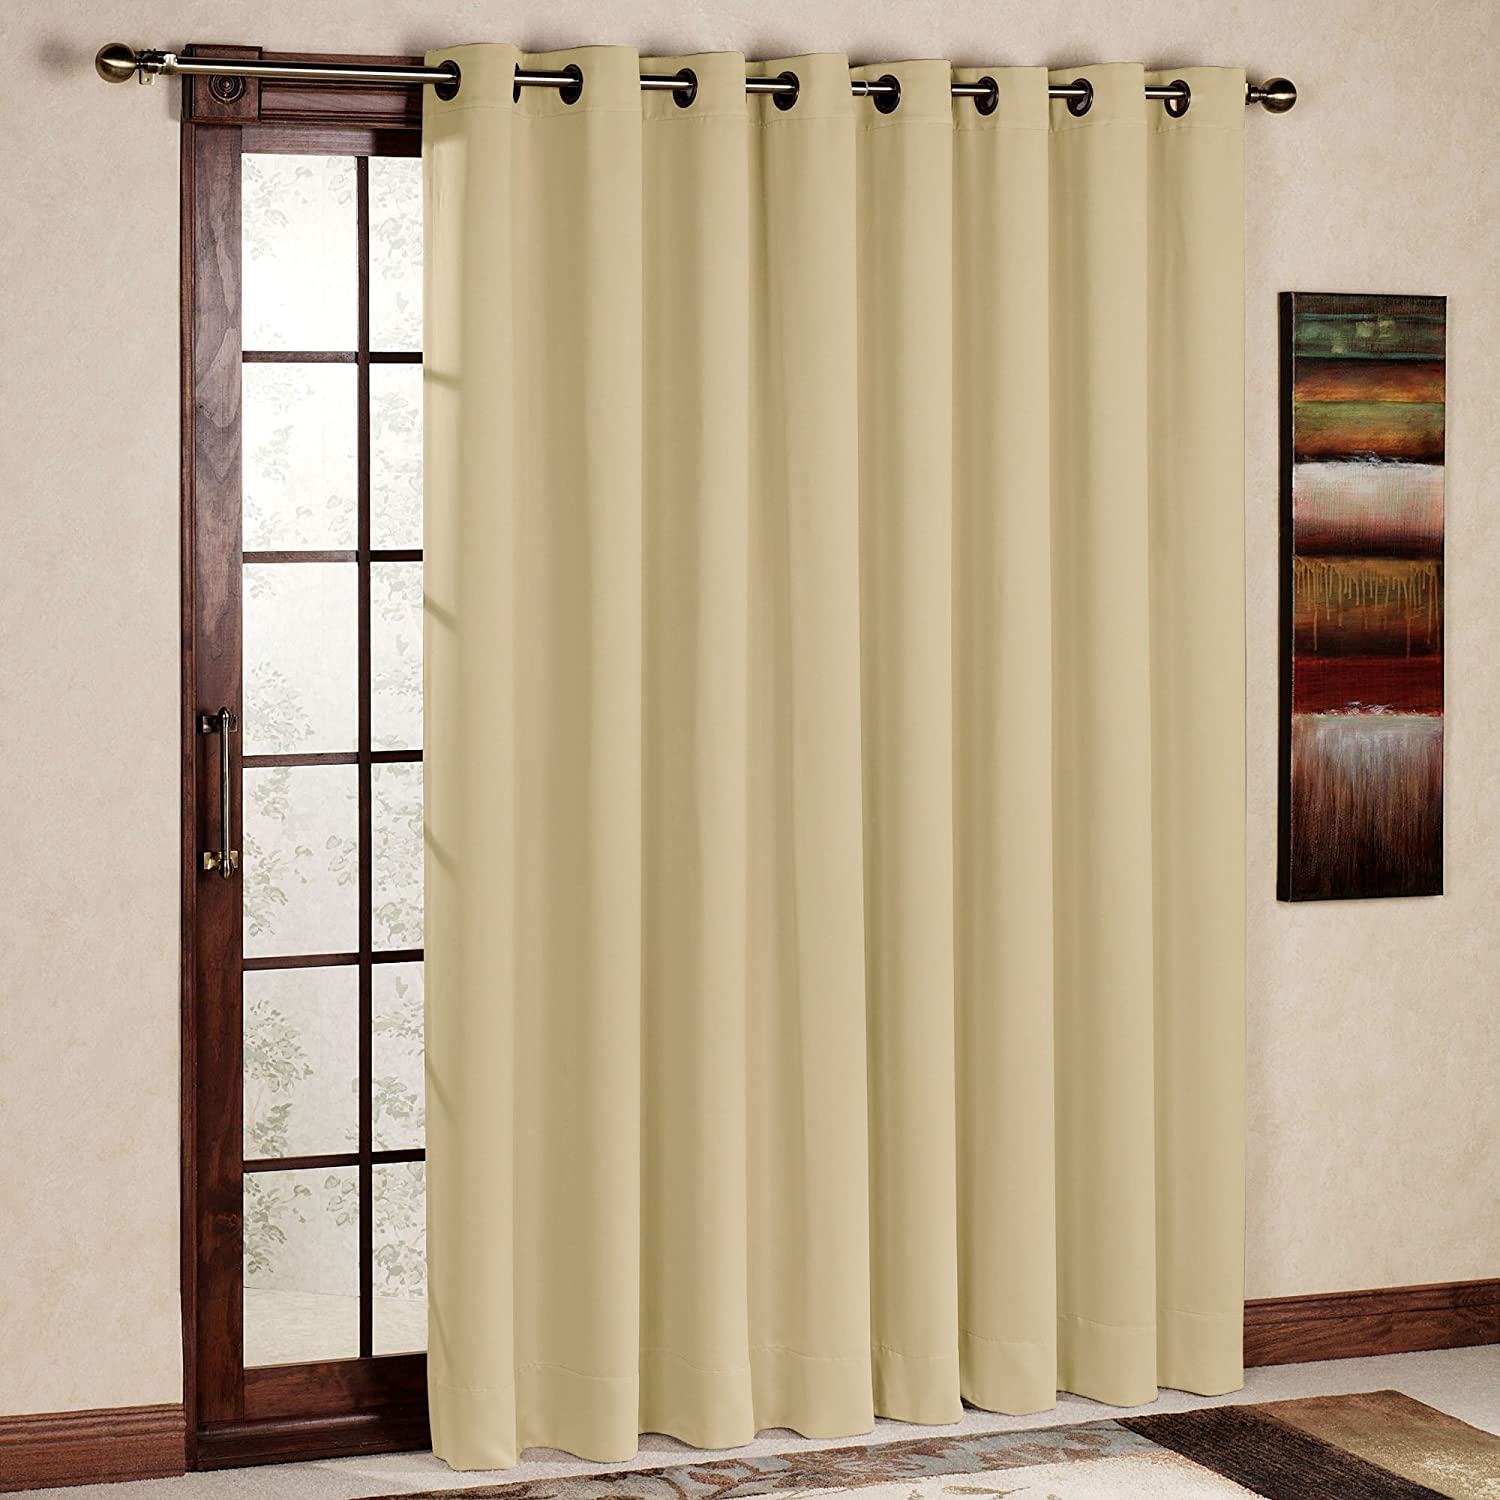 Amazon rhf wide thermal blackout patio door curtain panel amazon rhf wide thermal blackout patio door curtain panel sliding door insulated curtainsextra wide curtains100w by 84l inches beige home kitchen vtopaller Gallery